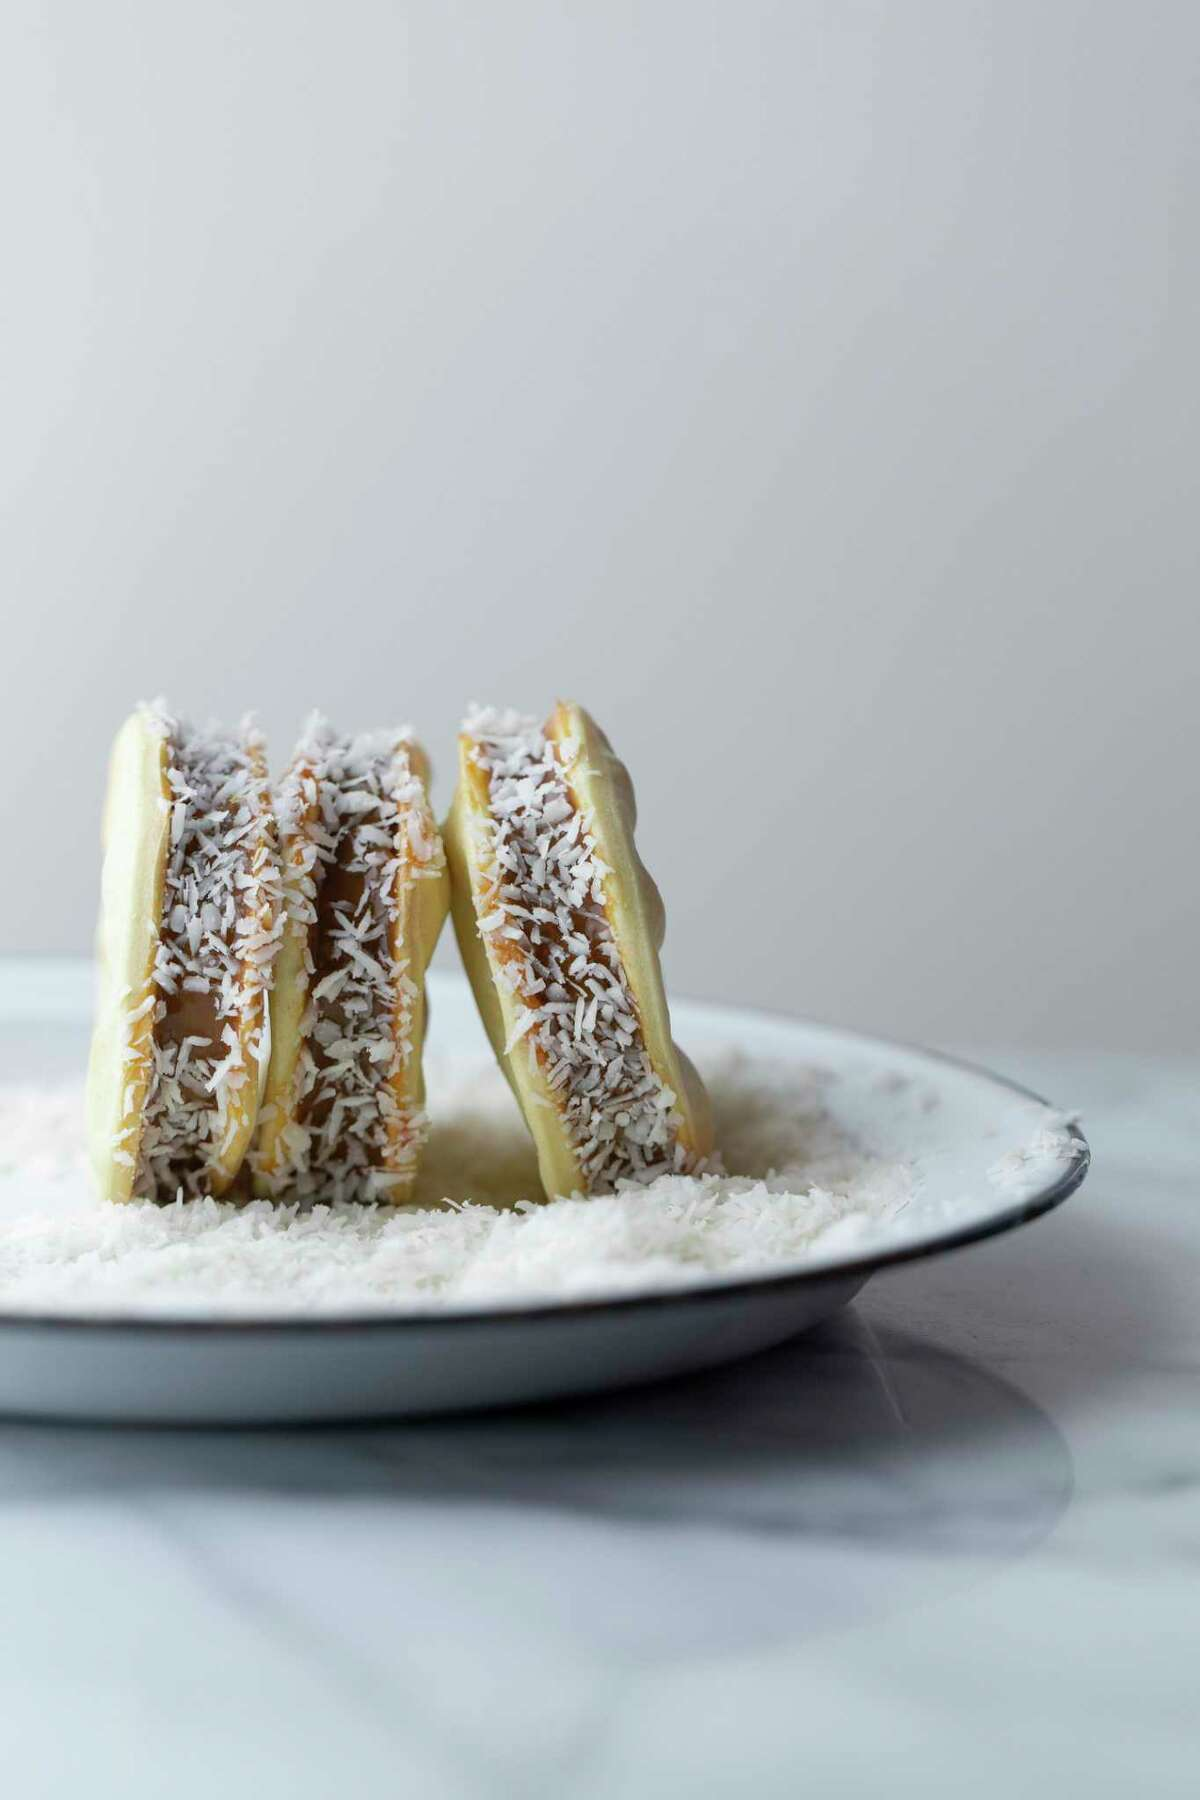 """Alfajores (Dulce de Leche-Filled Sandwich Cookies)from """"The Chilean Kitchen"""" by Pilar Hernandez and Eileen Smith."""